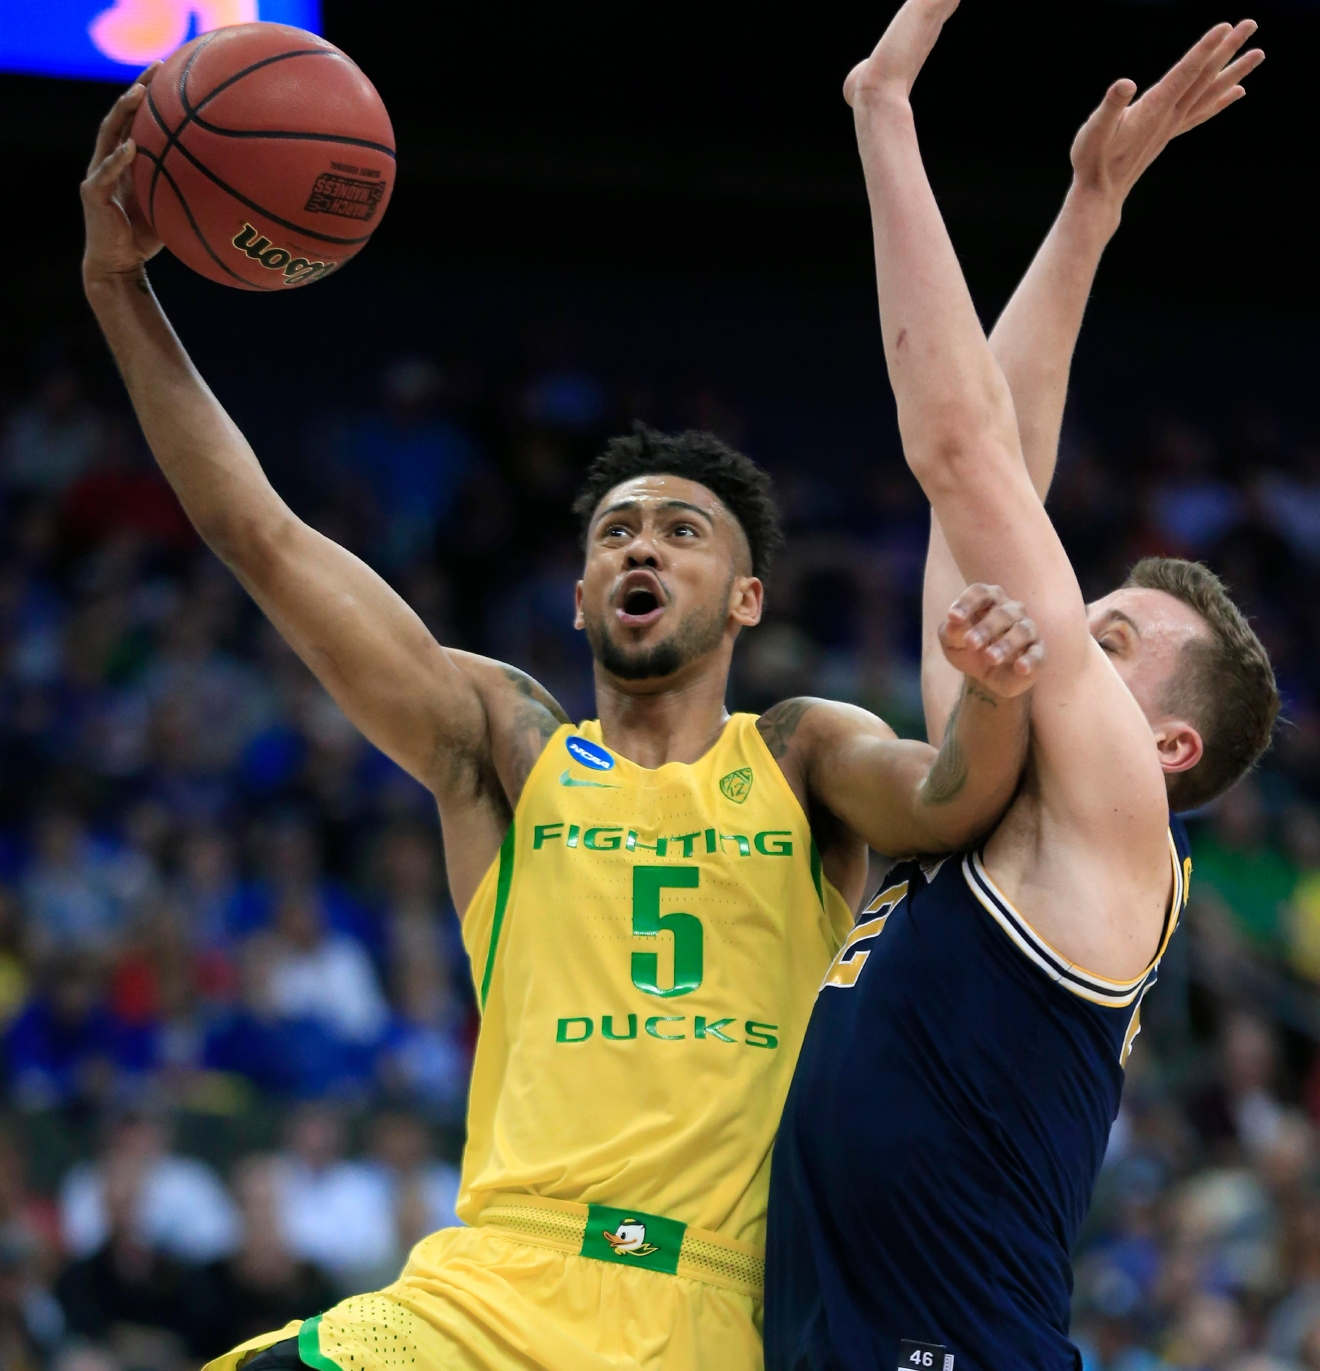 Oregon guard Tyler Dorsey (5) drives to the basket past Michigan guard Duncan Robinson during the first half of a regional semifinal of the NCAA men's college basketball tournament, Thursday, March 23, 2017, in Kansas City, Mo. (AP Photo/Orlin Wagner)